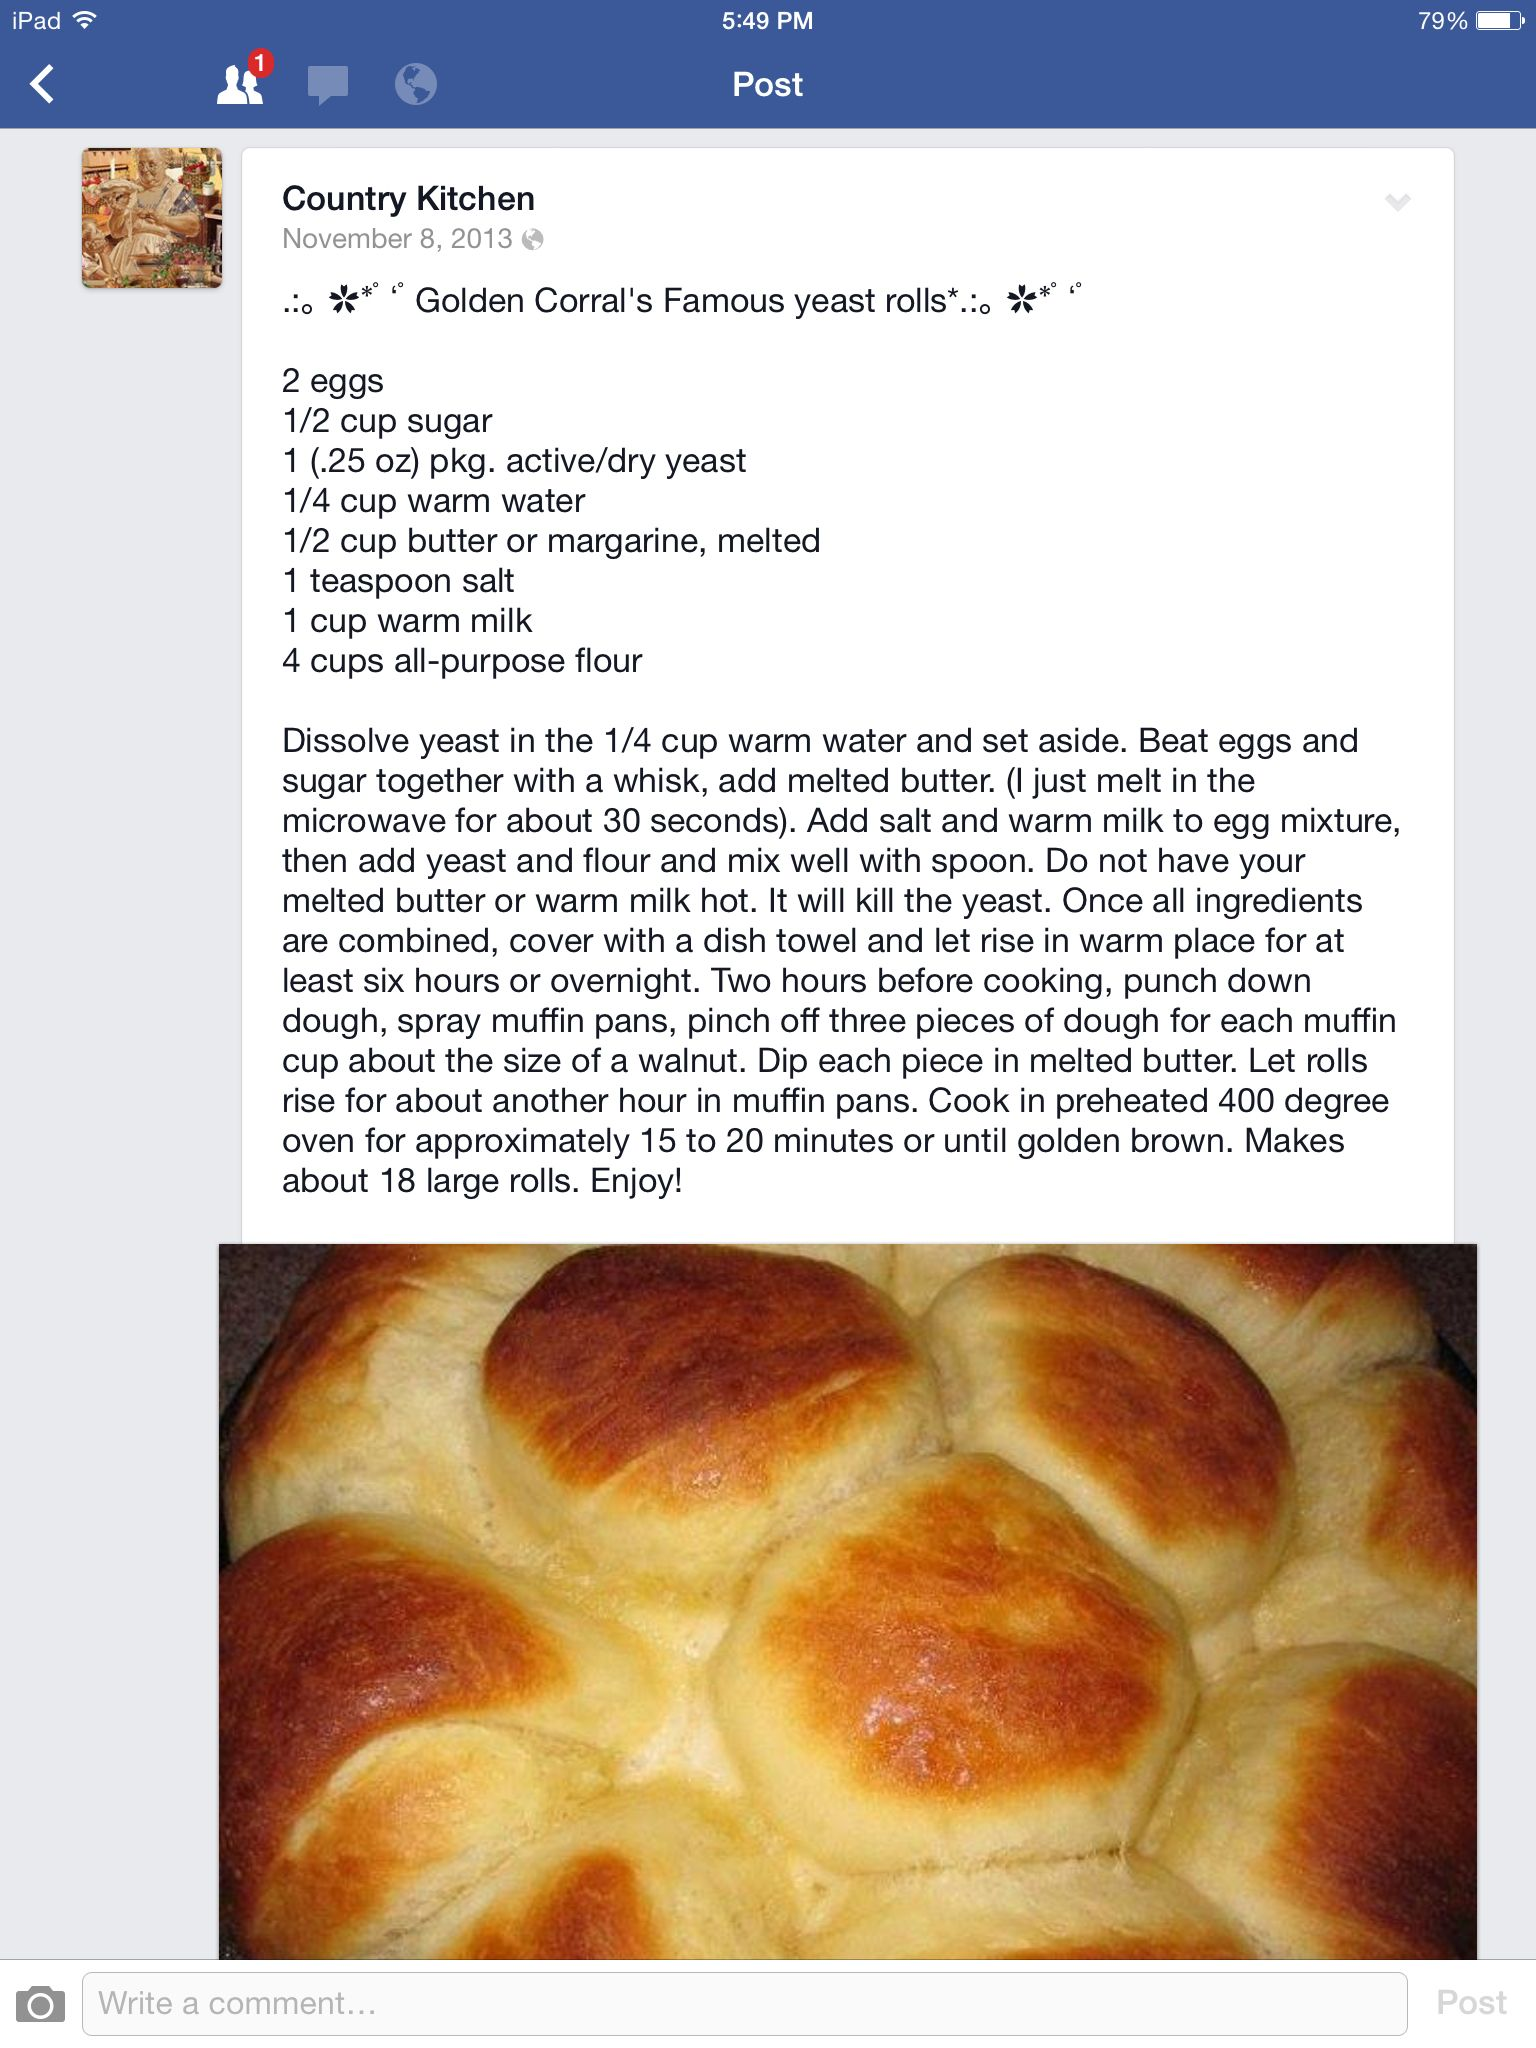 Golden Corral's famous yeast rolls | Yeast rolls, Homemade ...